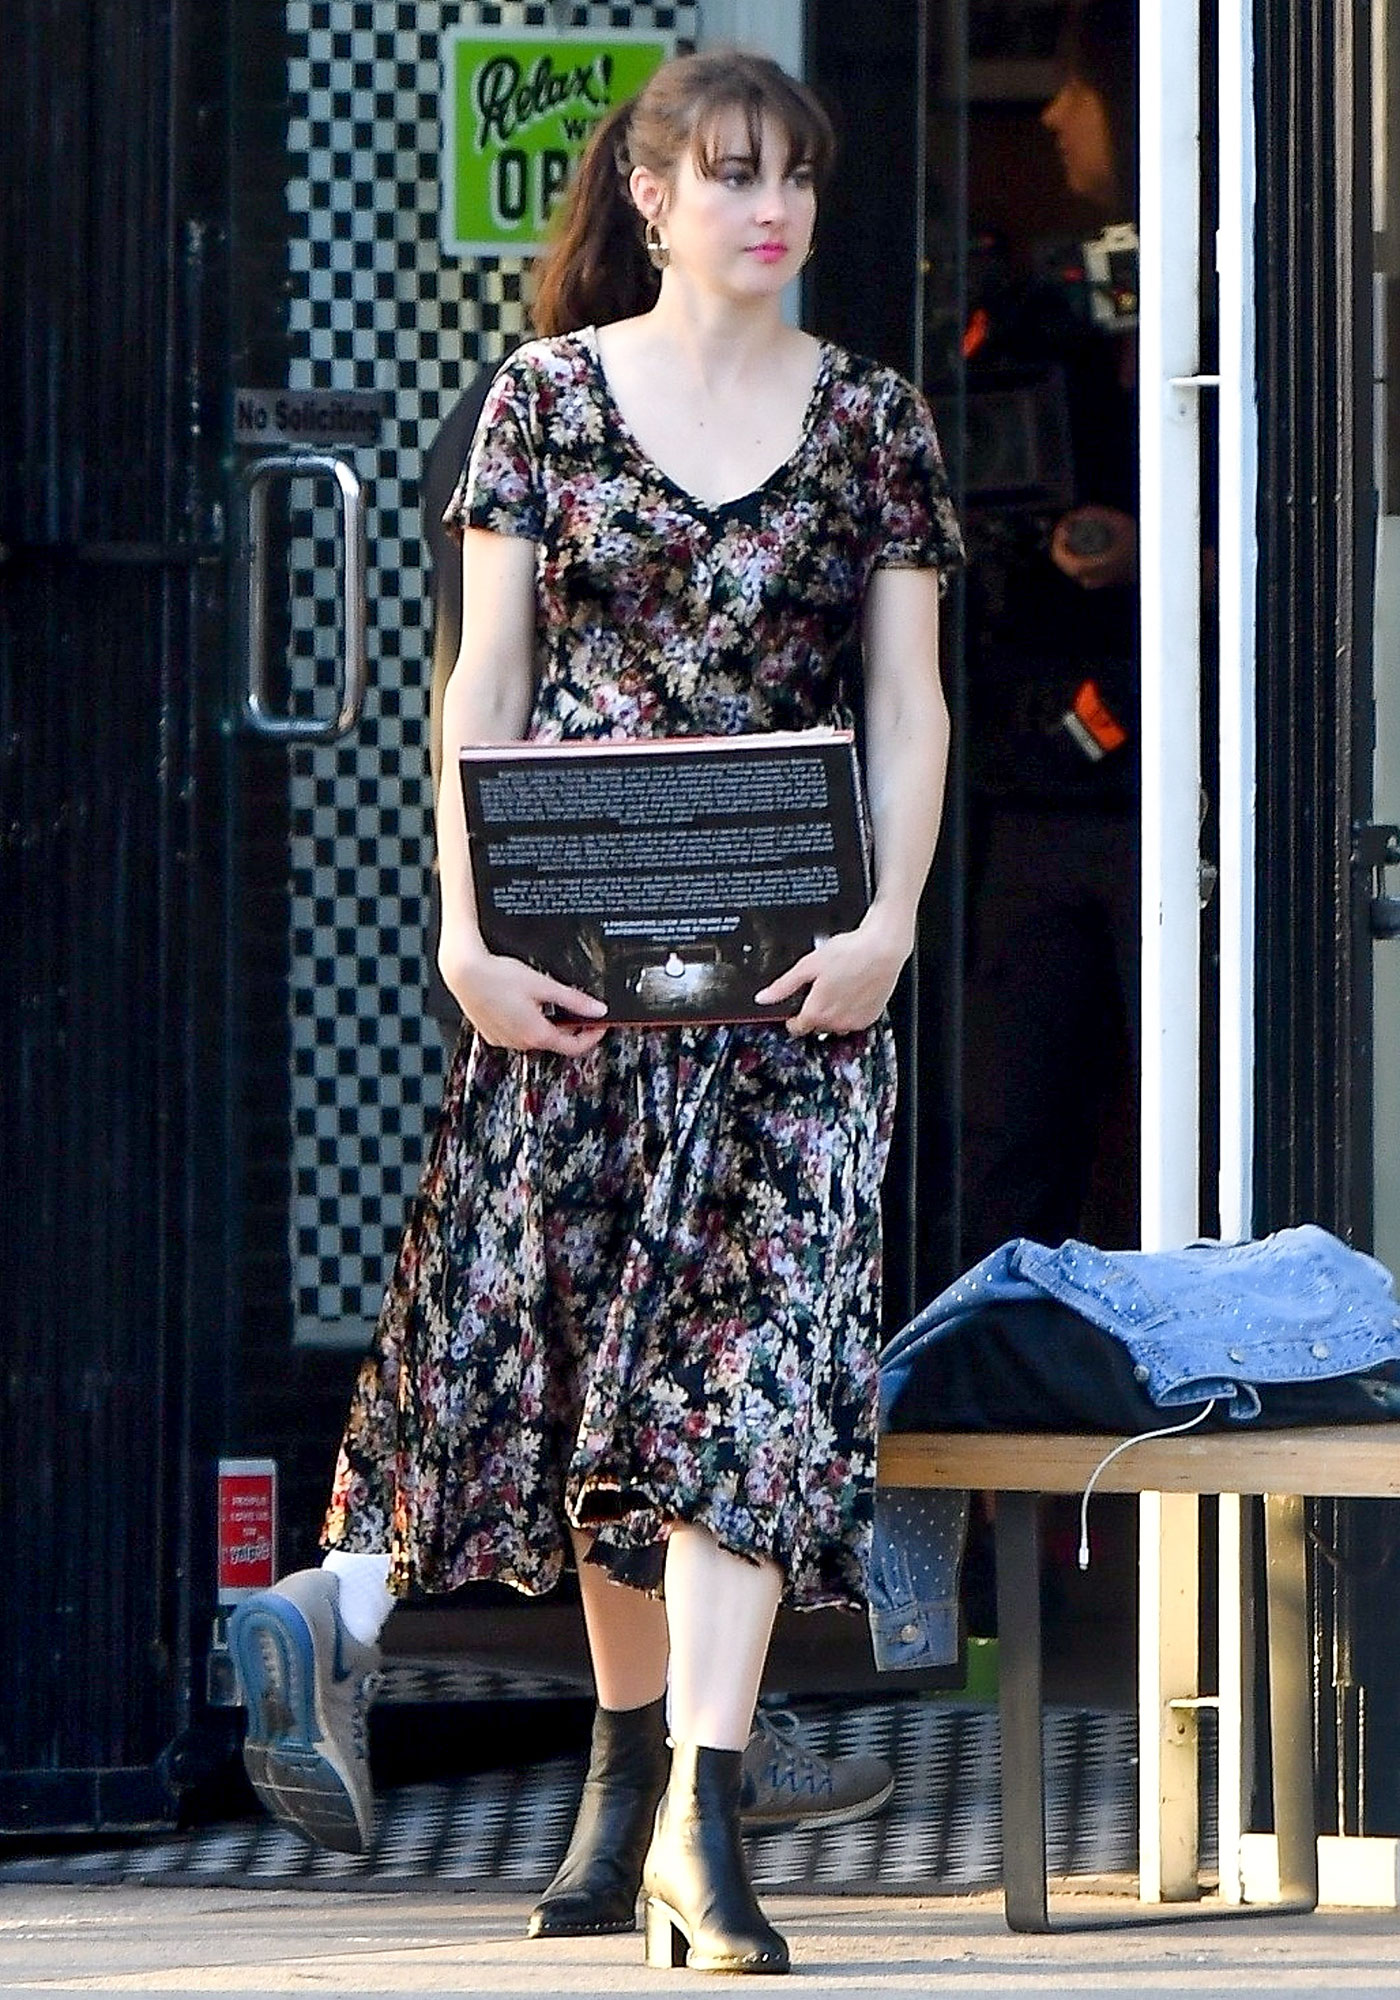 *EXCLUSIVE* Shailene Woodleywas spotted this morning back on the set of her upcomingfilm